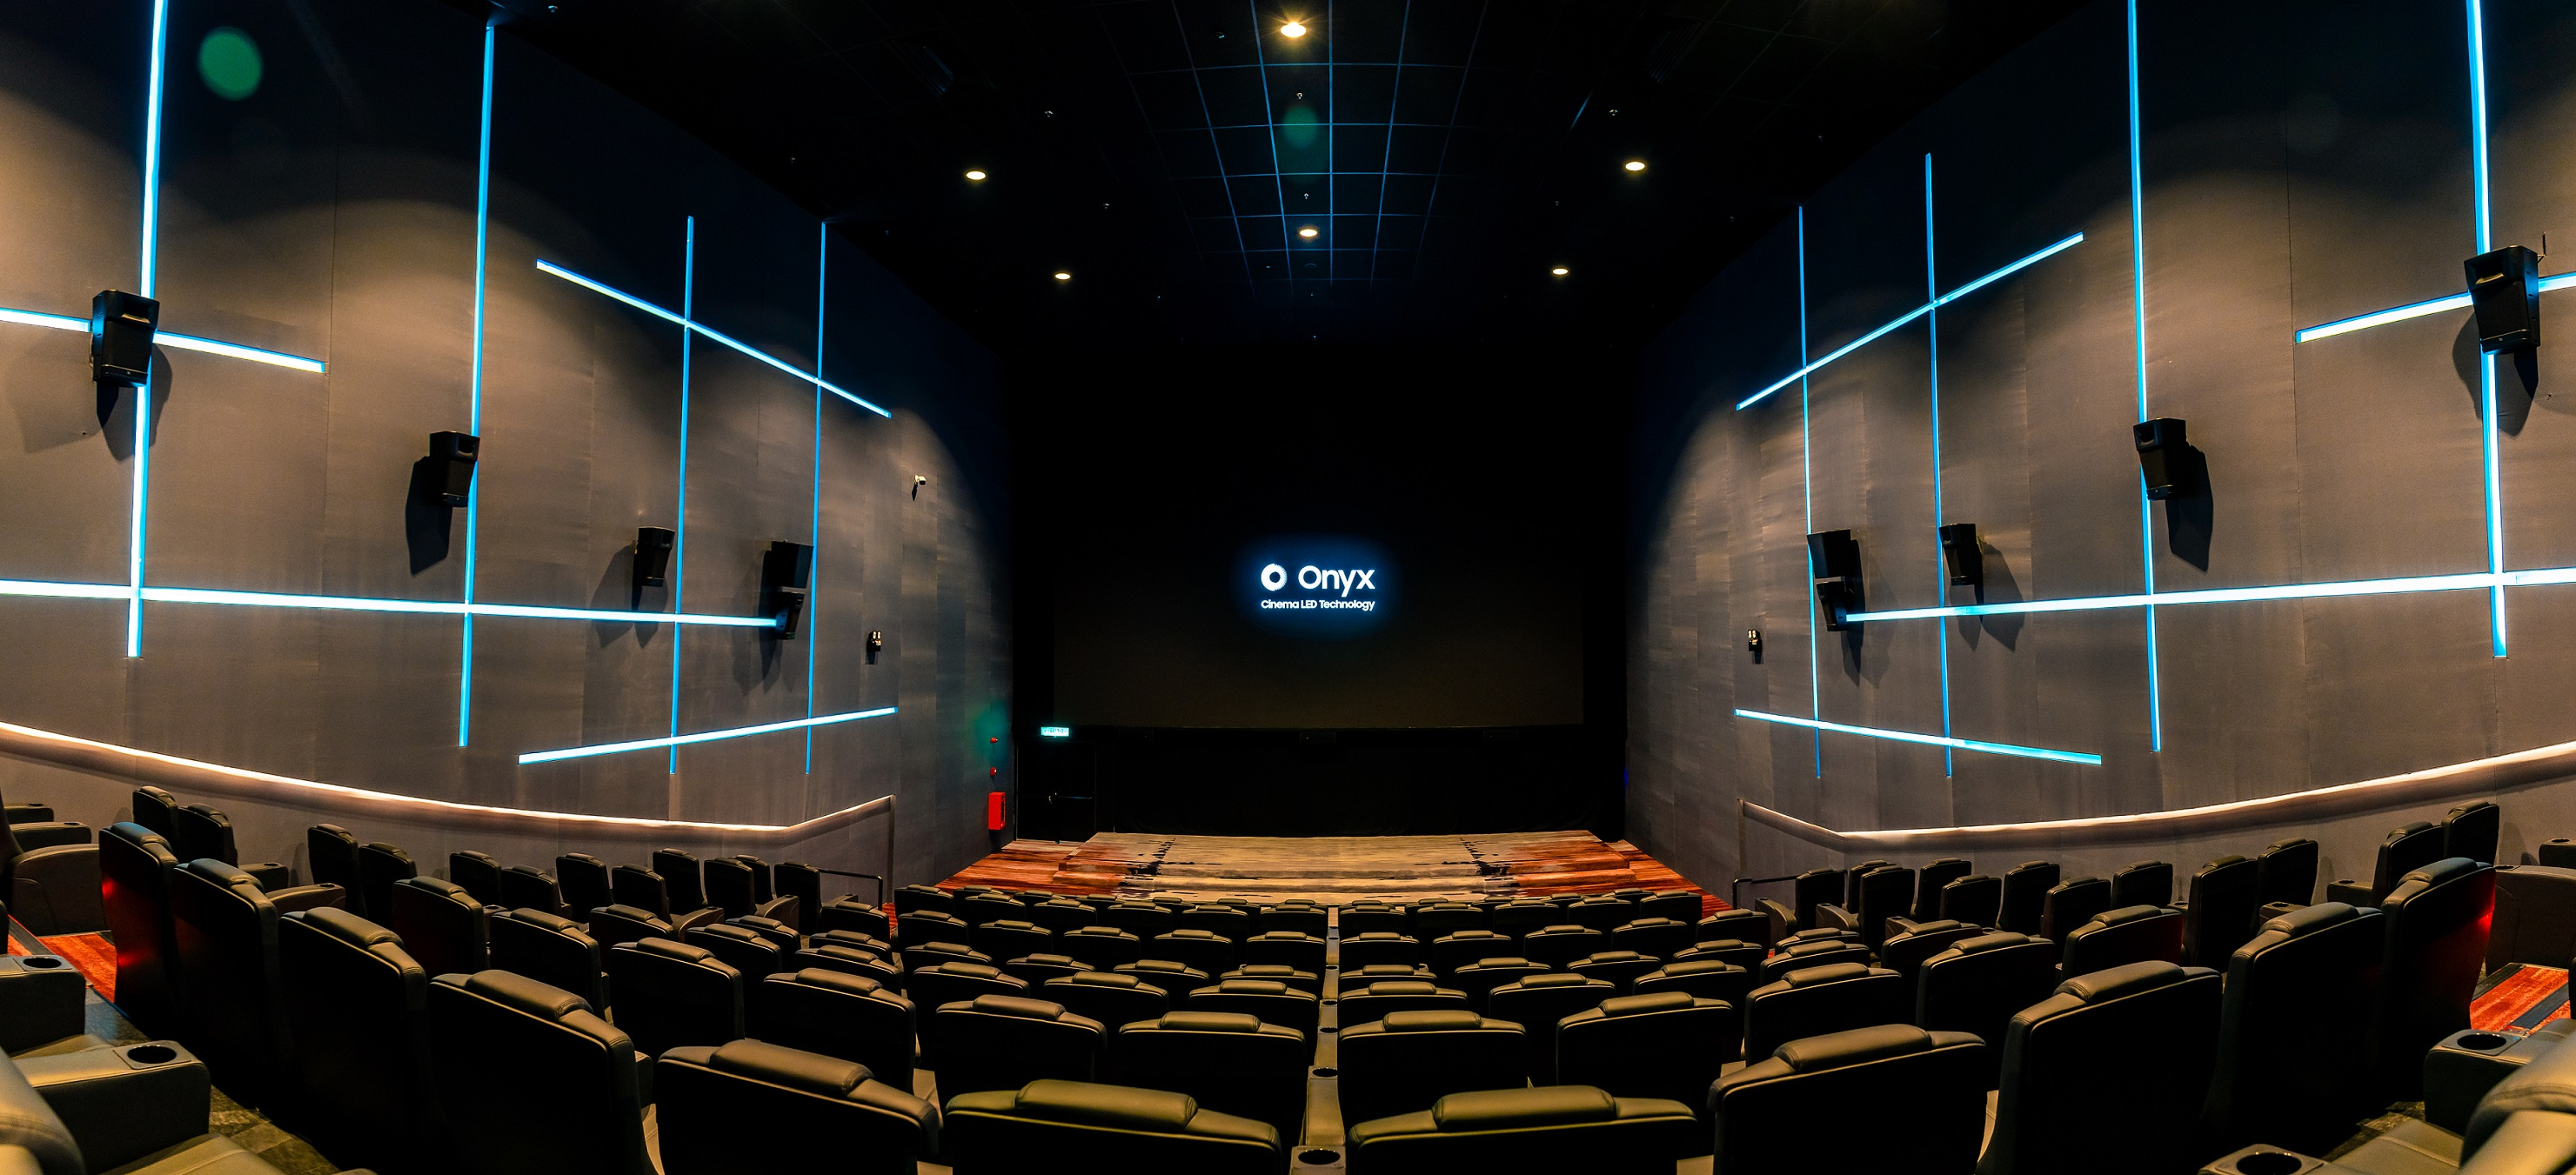 Press Release Mbo Cinemas Introduces Samsung Onyx Cinema Led Screen At New Outlet In Atria Shopping Gallery